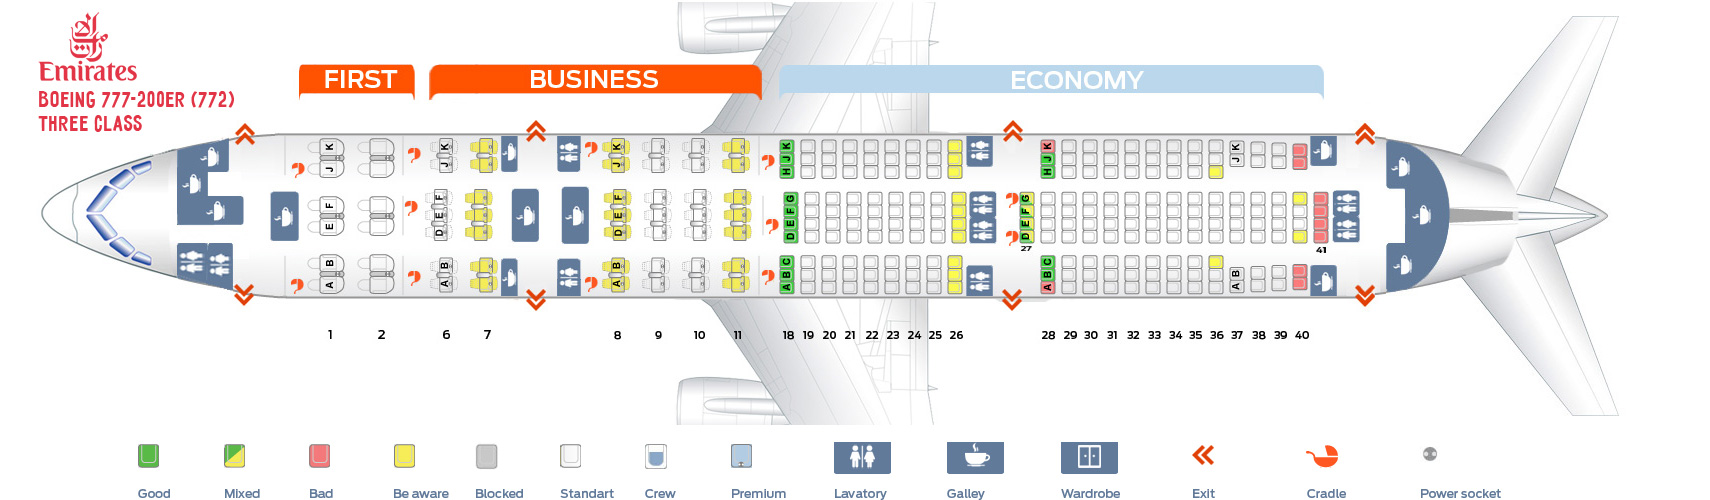 Seat Map Boeing 777-200ER Three class Emirates